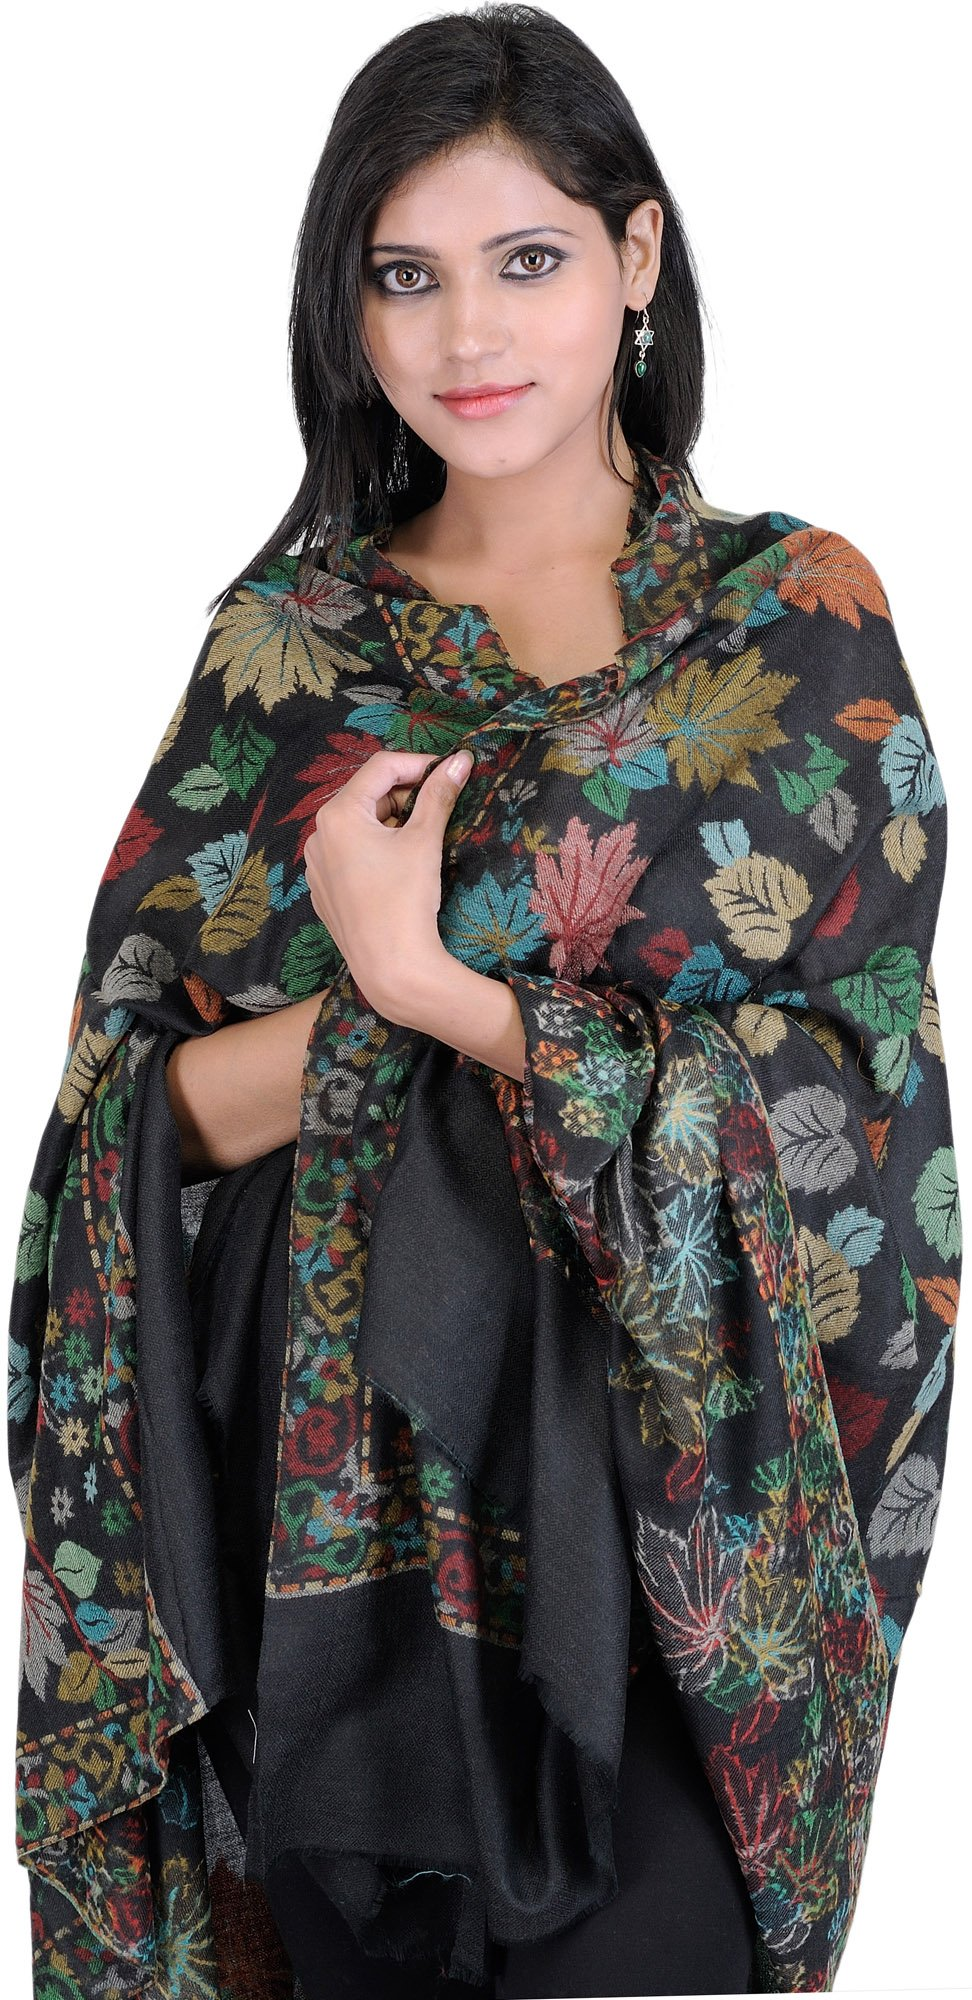 Exotic India Kani Shawl with Woven Chinar Leaves in Multi-Colored Thread - Color Black